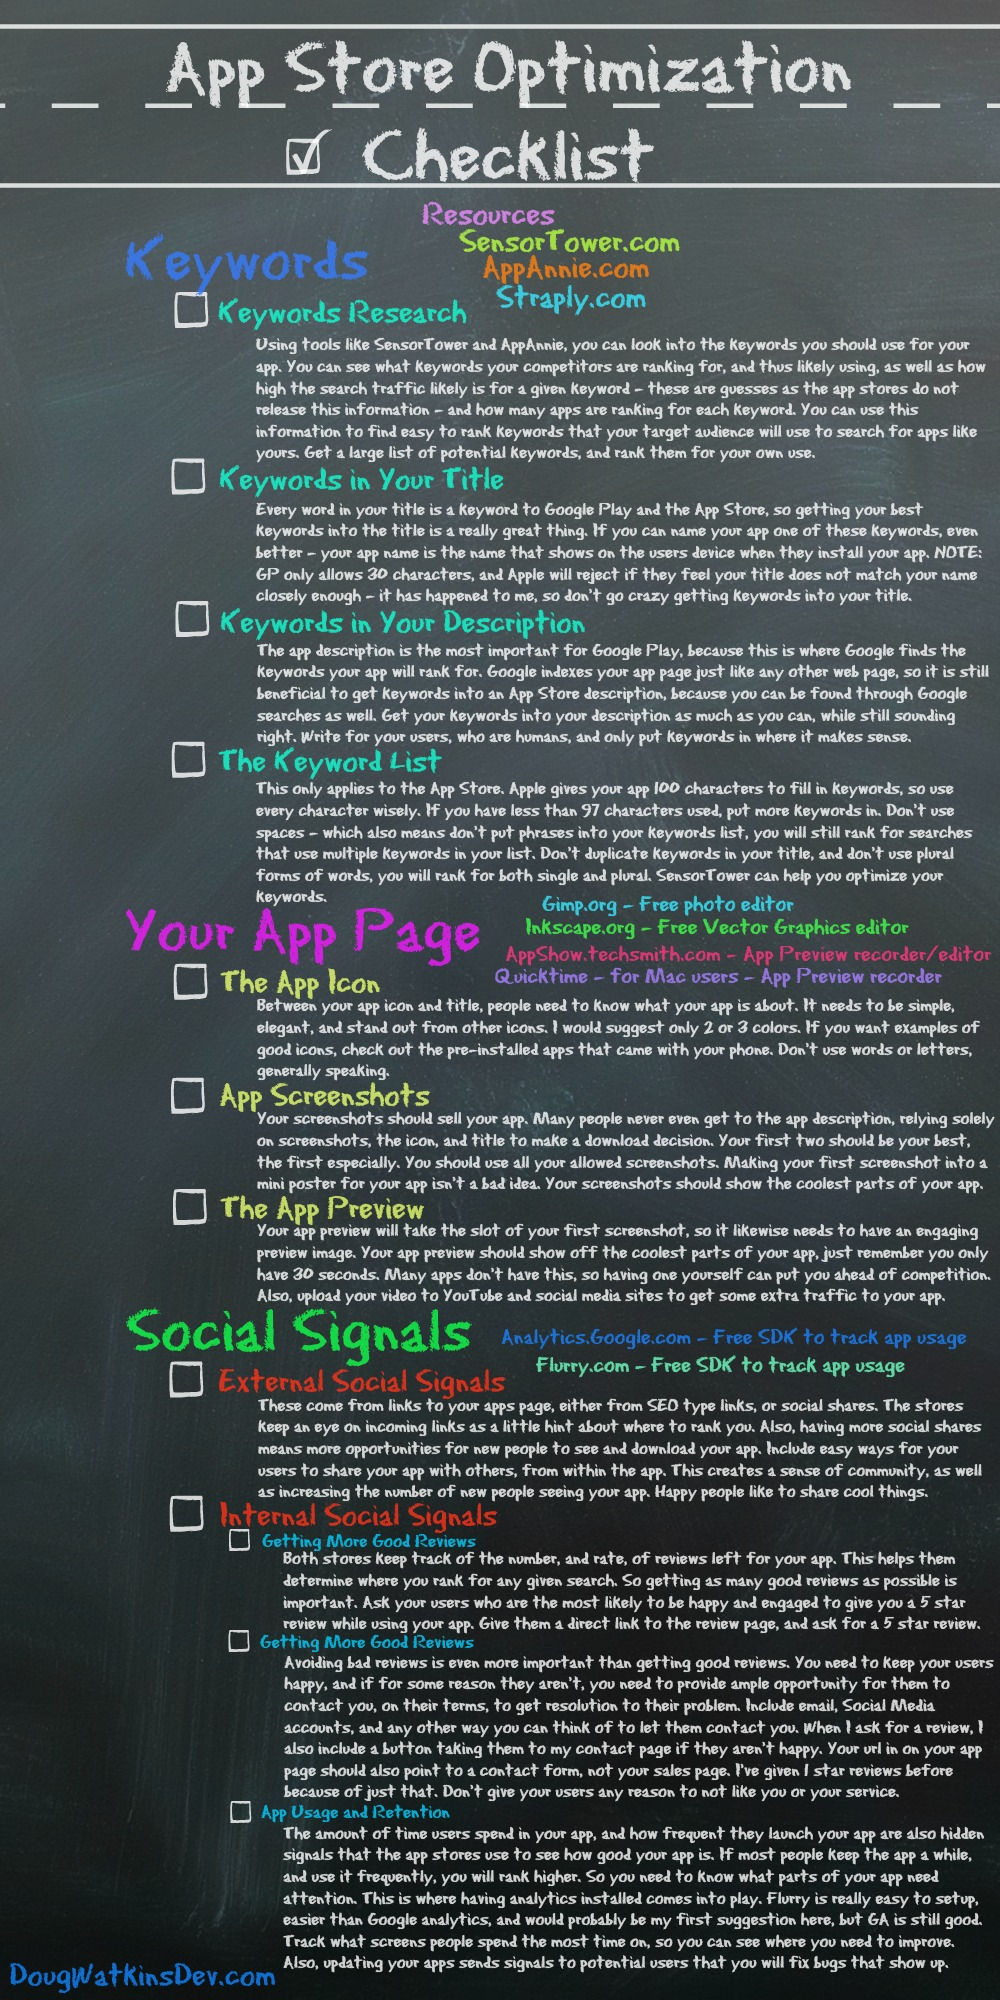 App Store Optimization Checklist Infographic